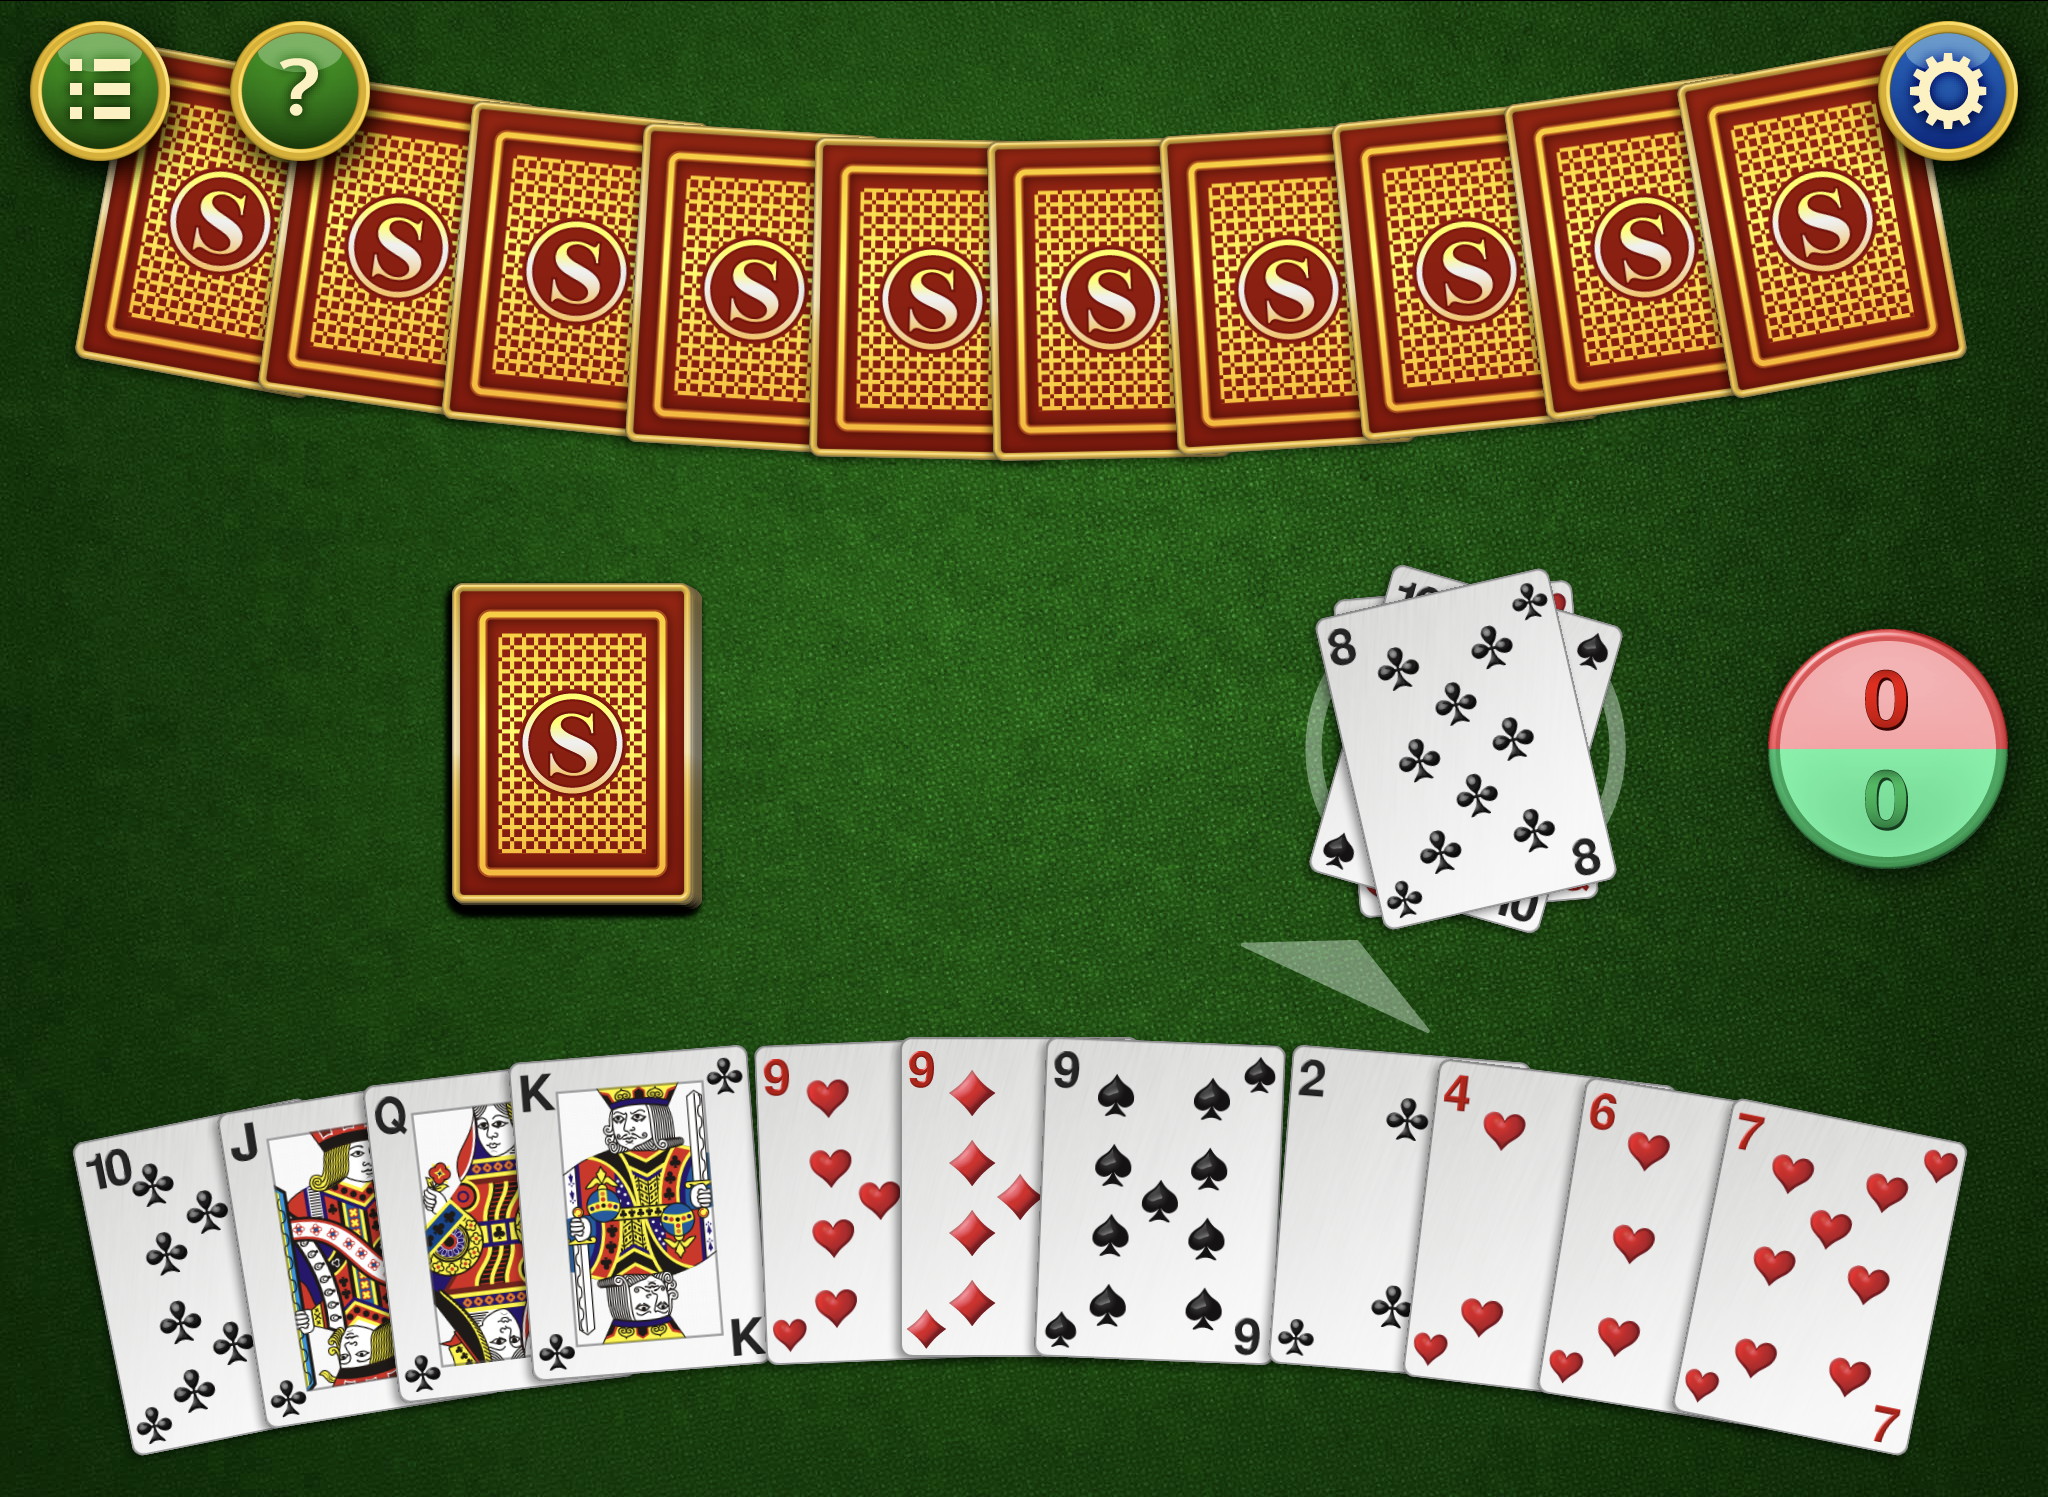 Gin Rummy by Mahjong, recommended app for people living with dementia